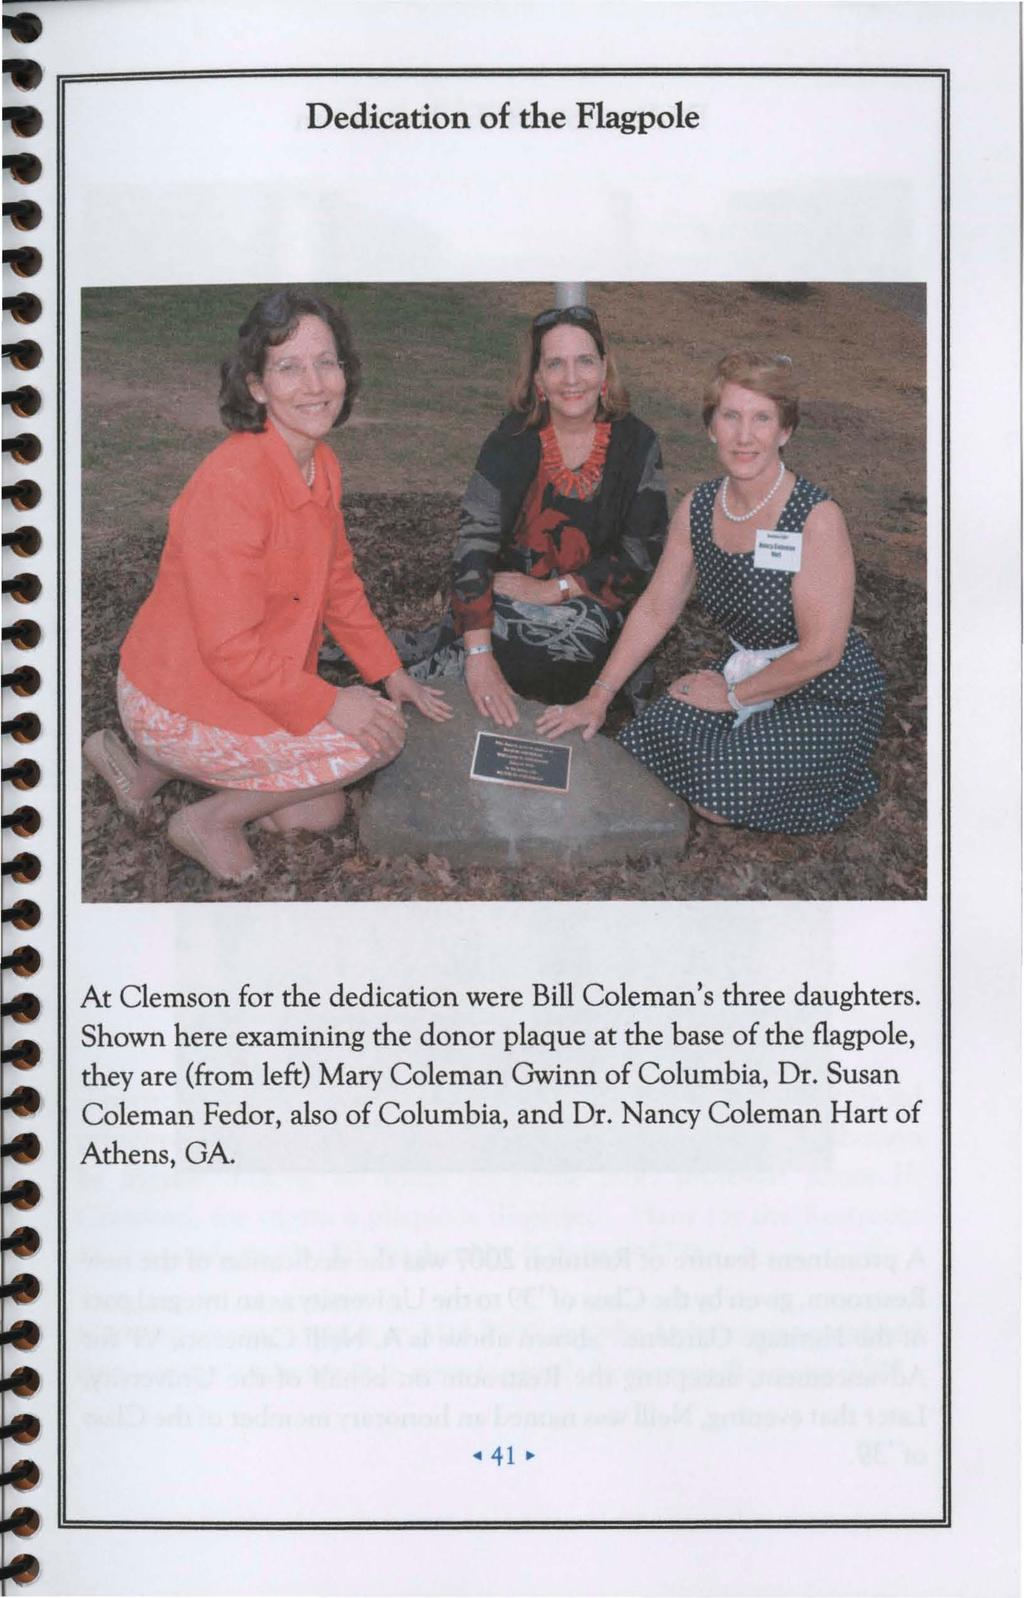 Clemson Am College Class Of 1939 Reunion Program Pdf 2366b Wiring Diagram Coleman Dedication The Flagpole At For Were Bill Colemans Three Daughters